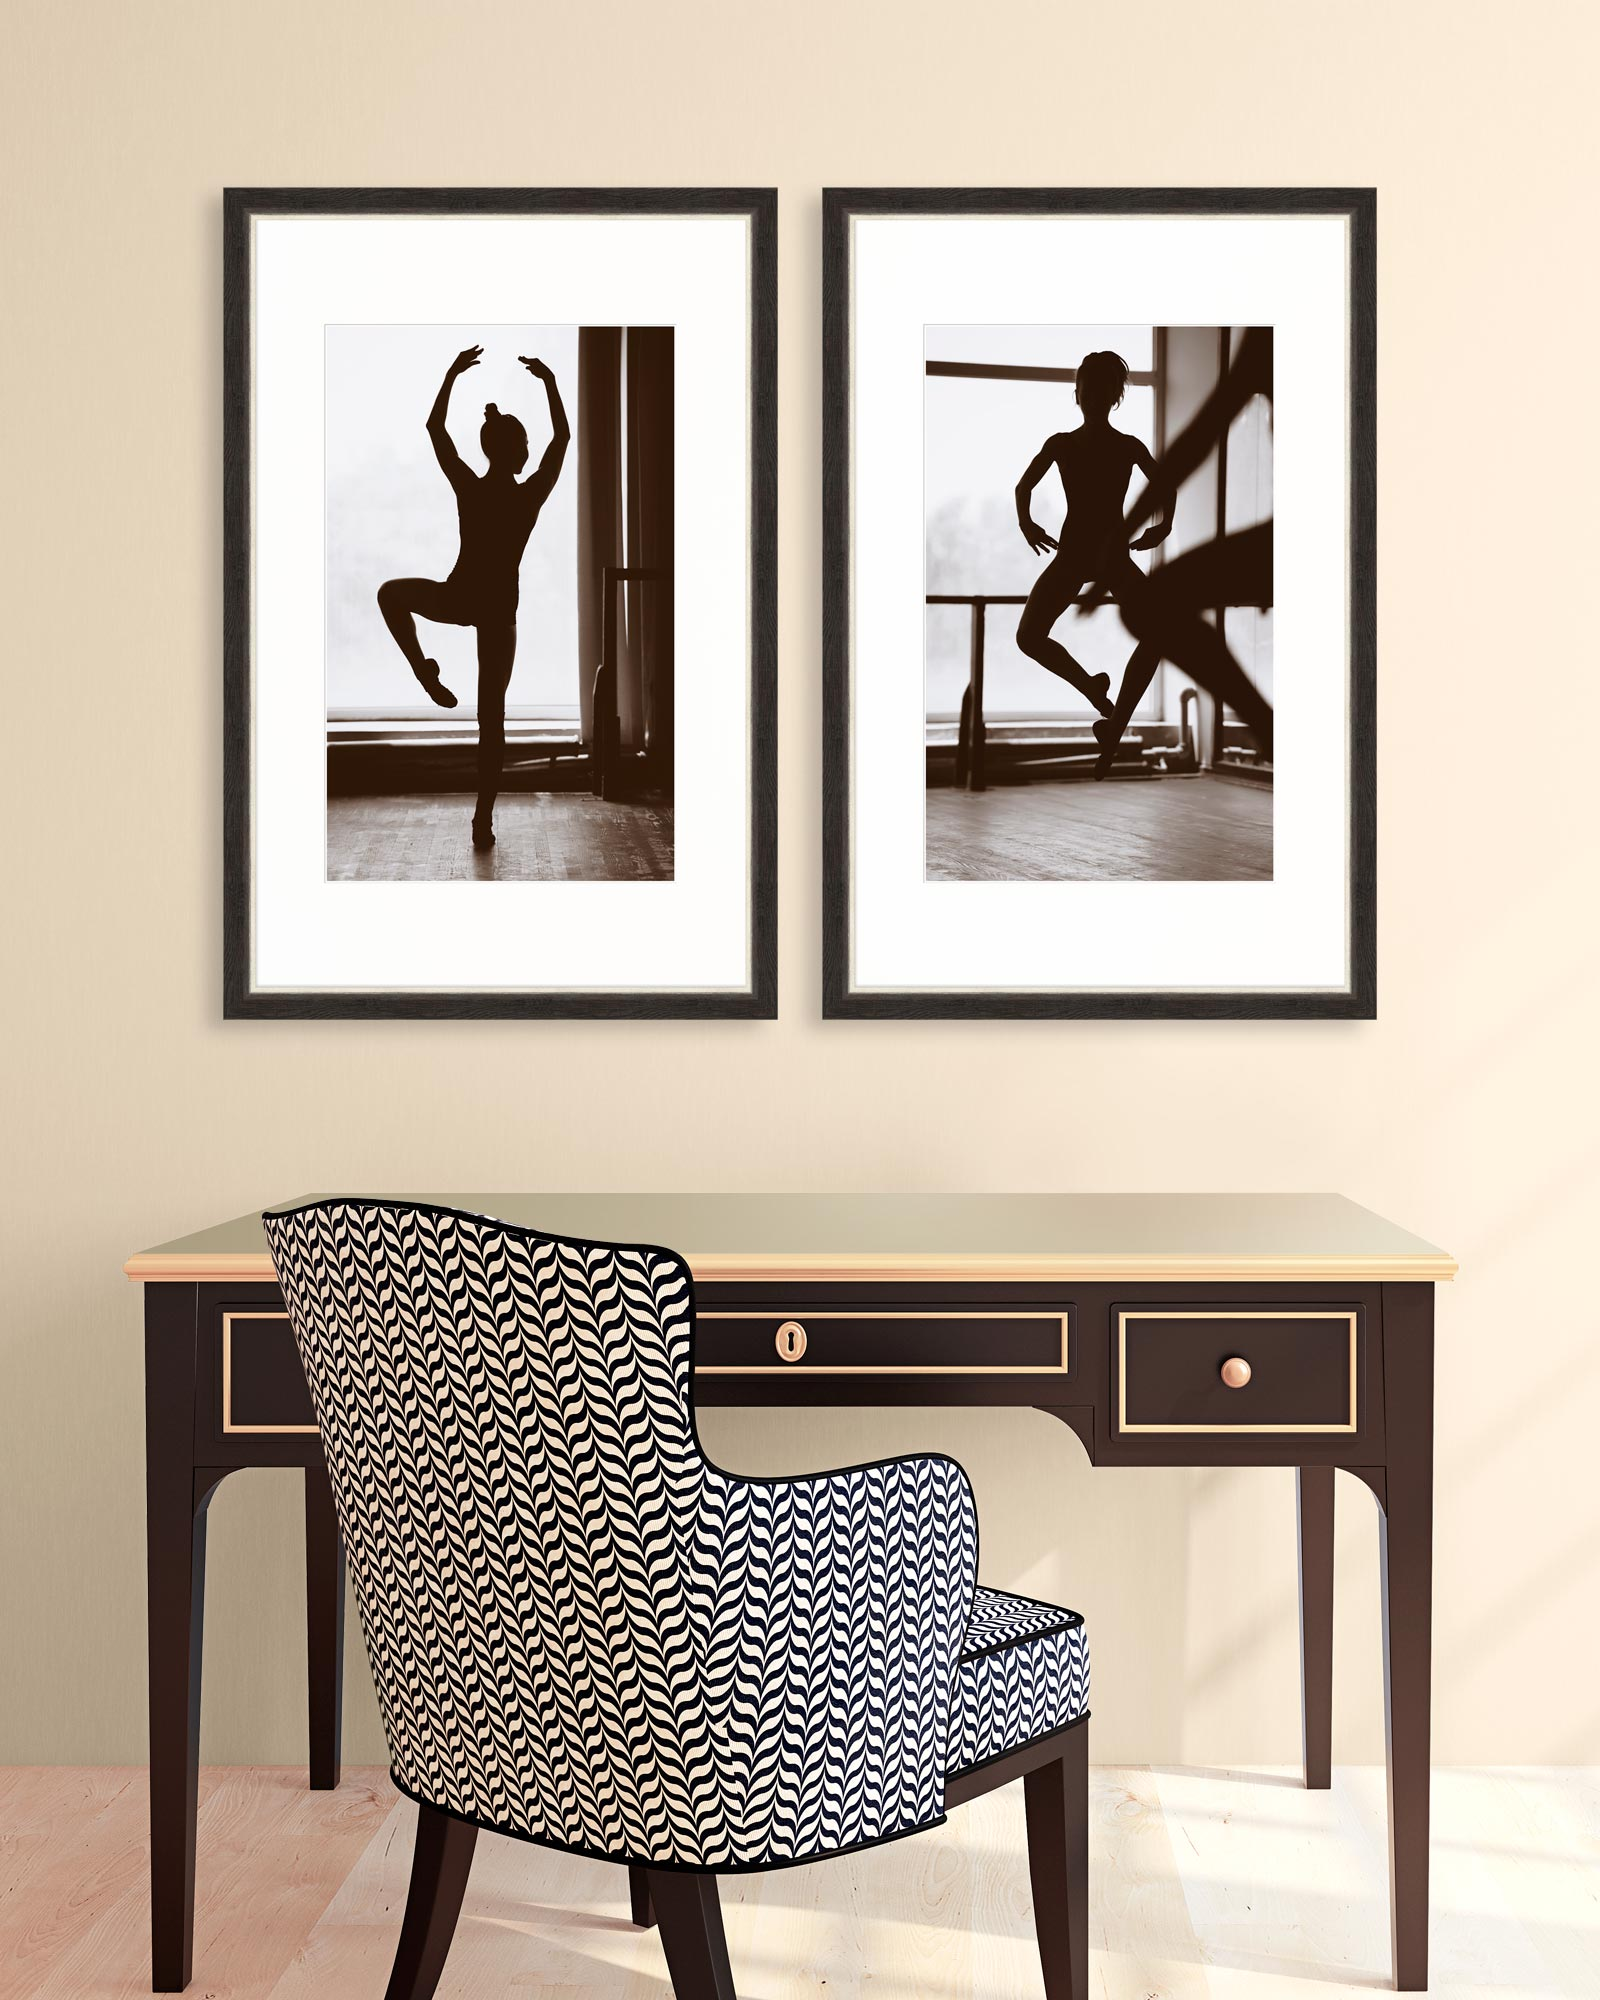 Tablou 2 piese Framed Art Movement